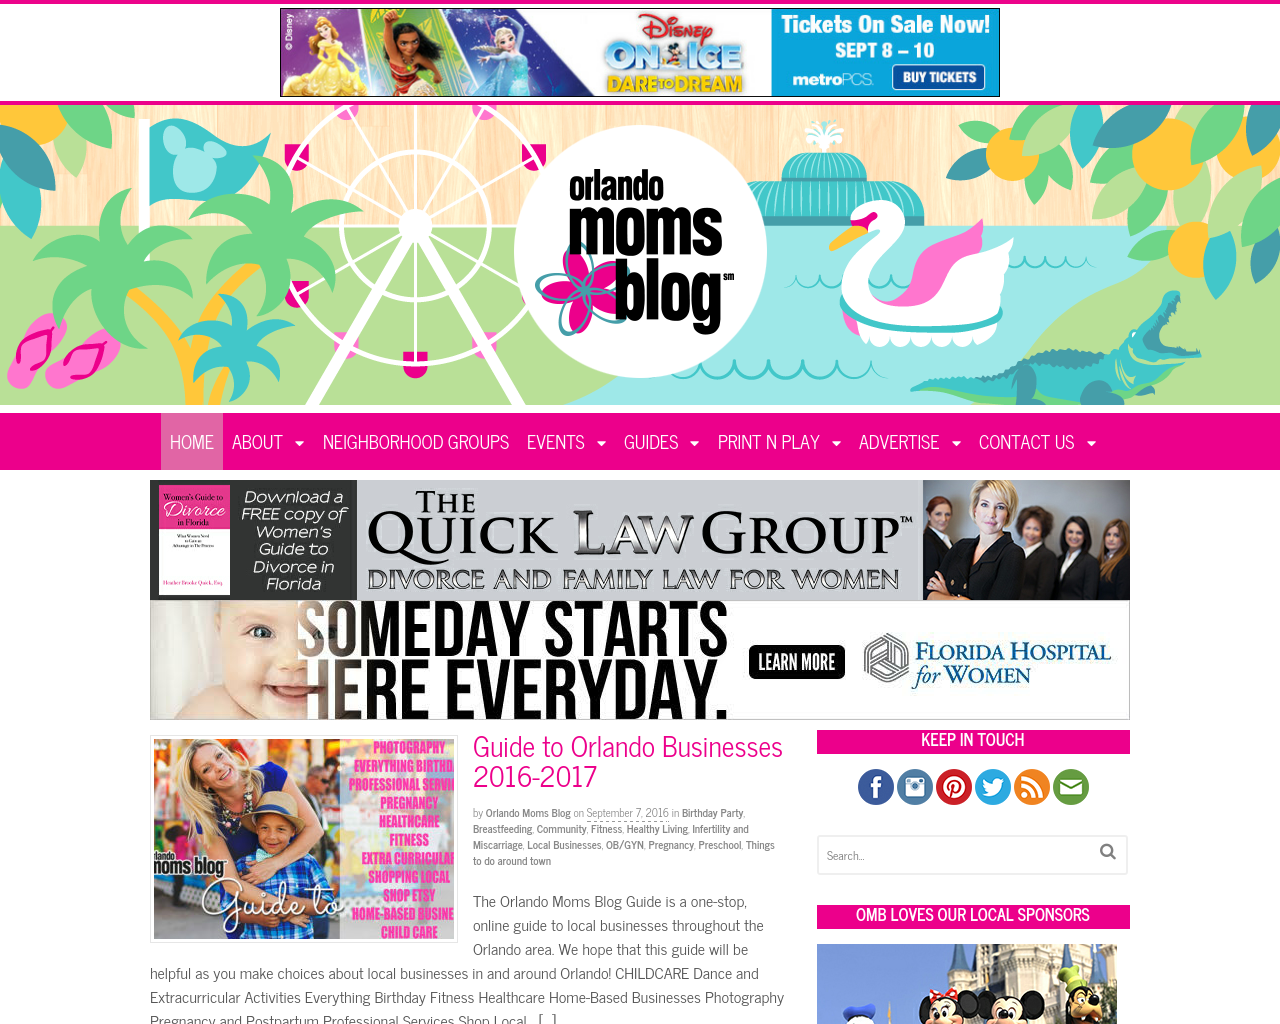 Orlando-Moms-Blog-Advertising-Reviews-Pricing